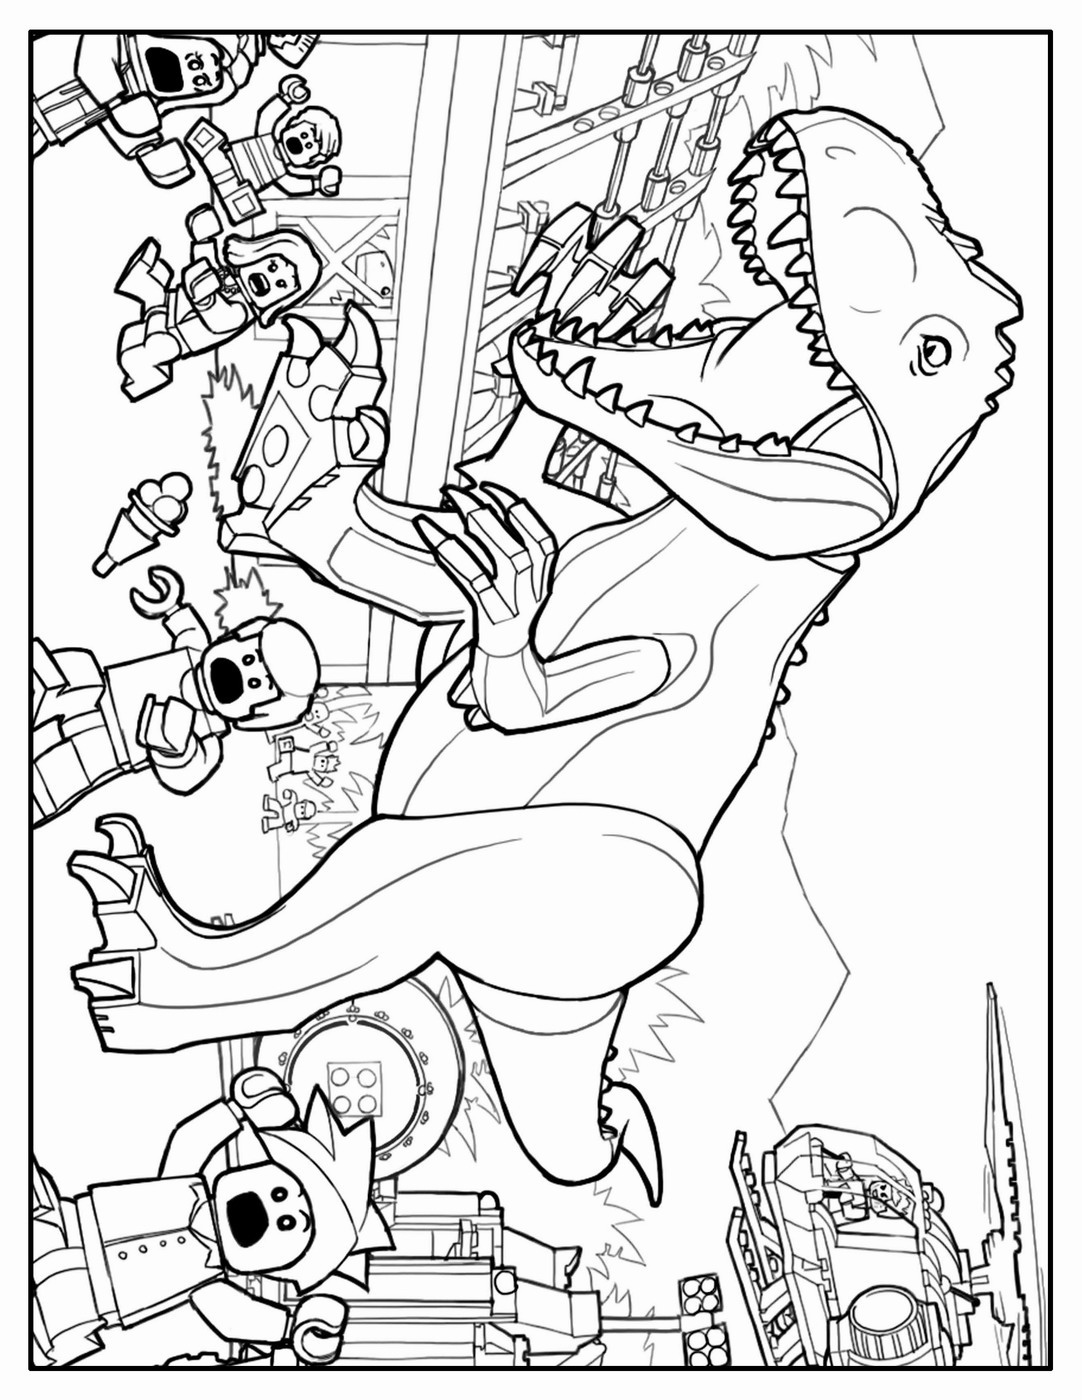 jurassic world printable coloring pages free printable jurassic world coloring pages jurassic world coloring printable pages